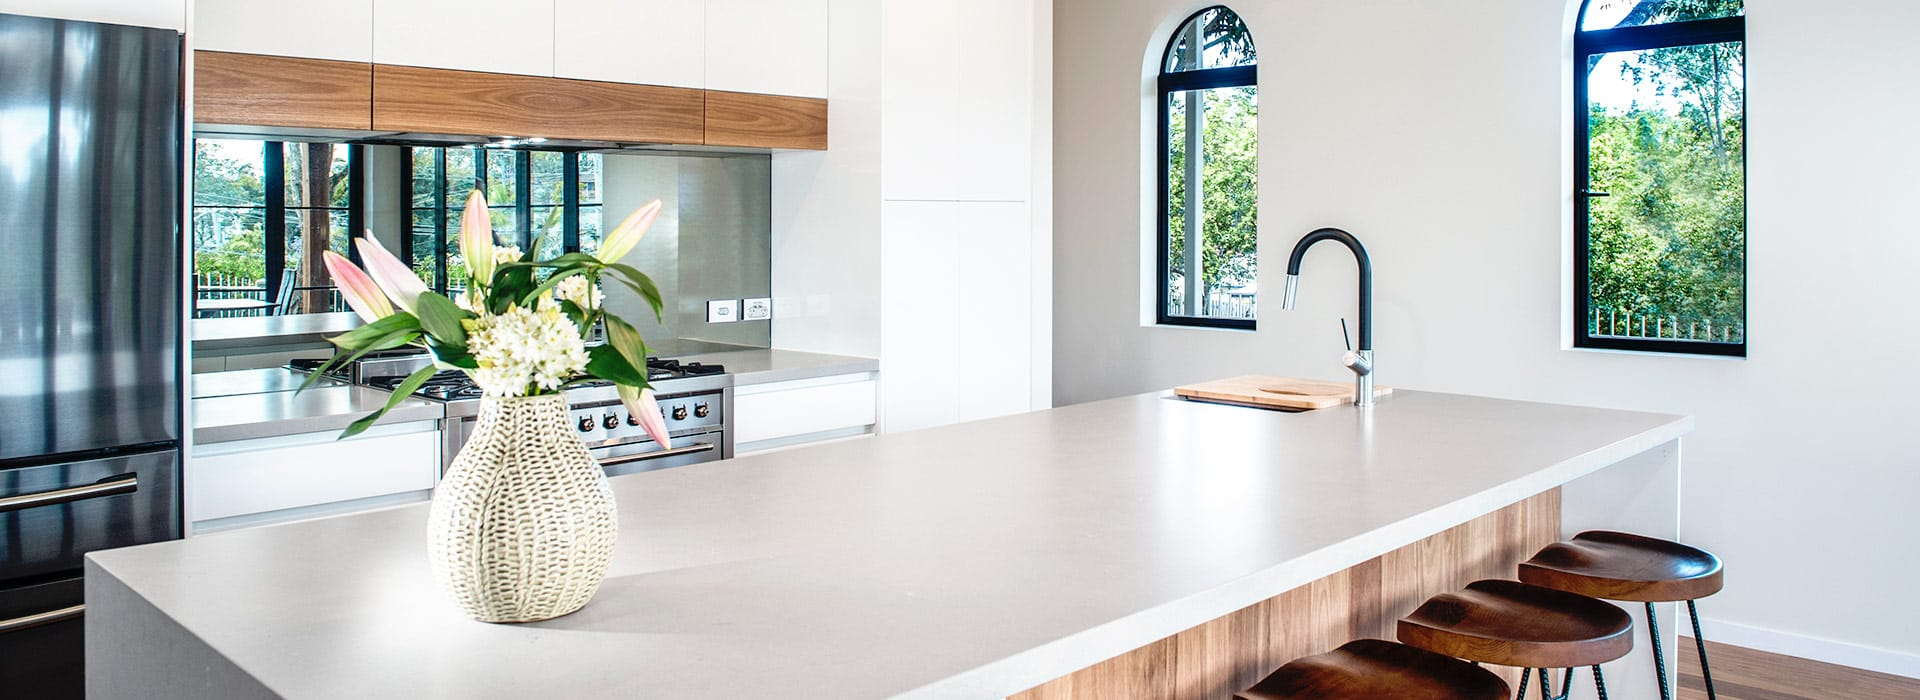 Kitchen Connection - Modern white and timber kitchen